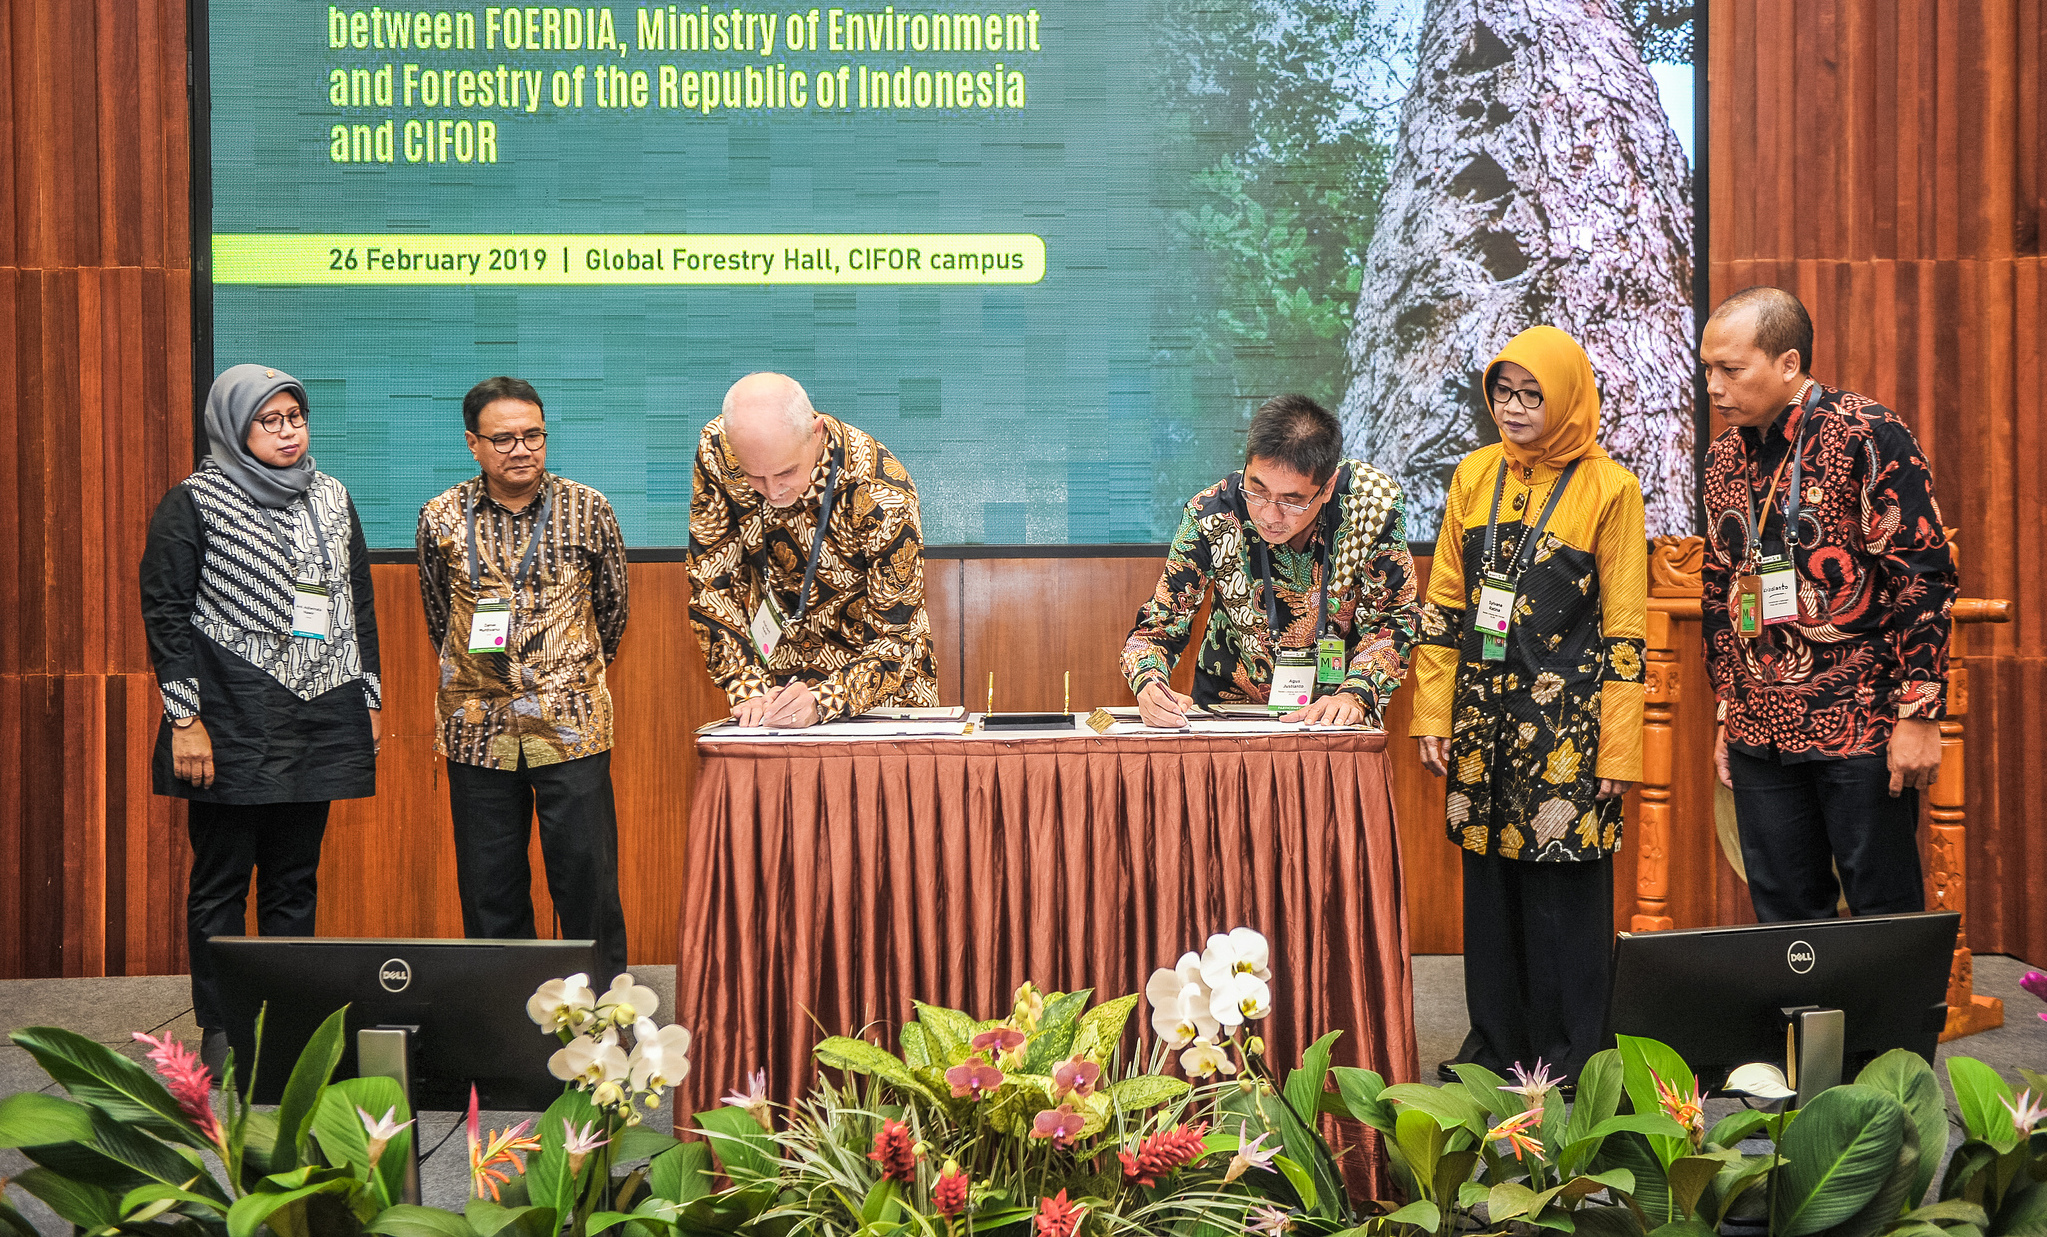 FOERDIA and CIFOR sign MoU, to protest Indonesia's forests, enforce social mobility and fight climate change, Rober Nasi, CIFOR, Indonesia government, FOERDIA, MoU, forests, social forestry, deforestation